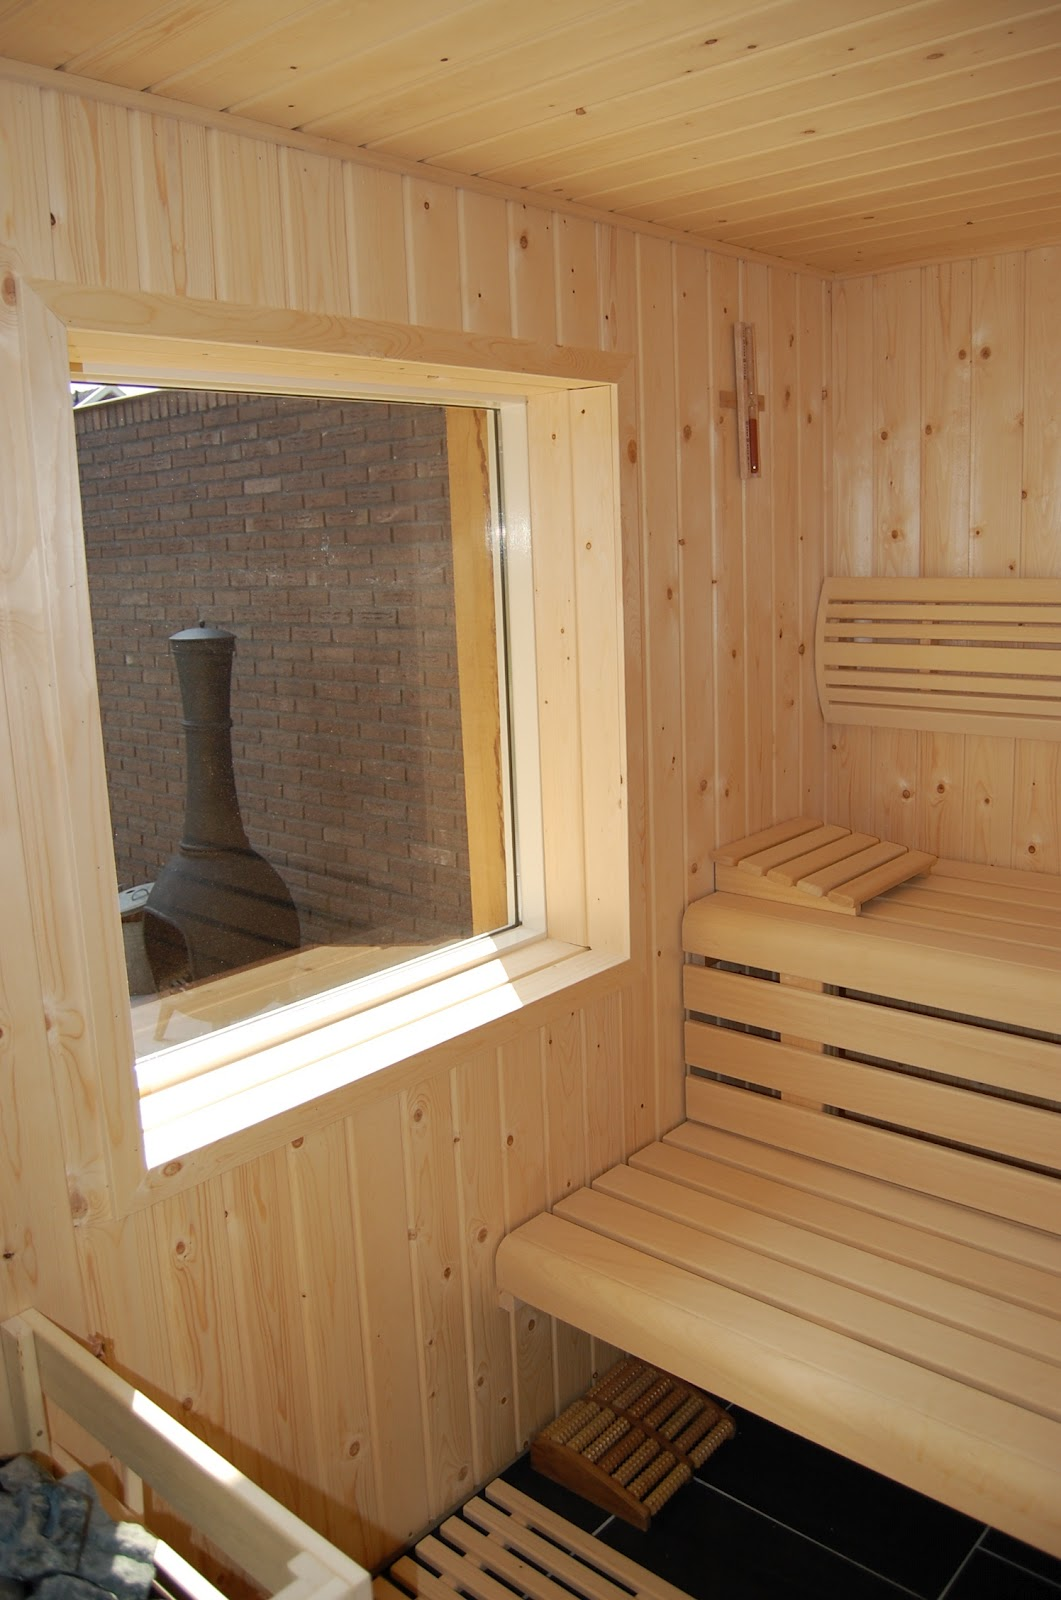 Badkamer, Spa- Wellnessdesign: Sauna Design